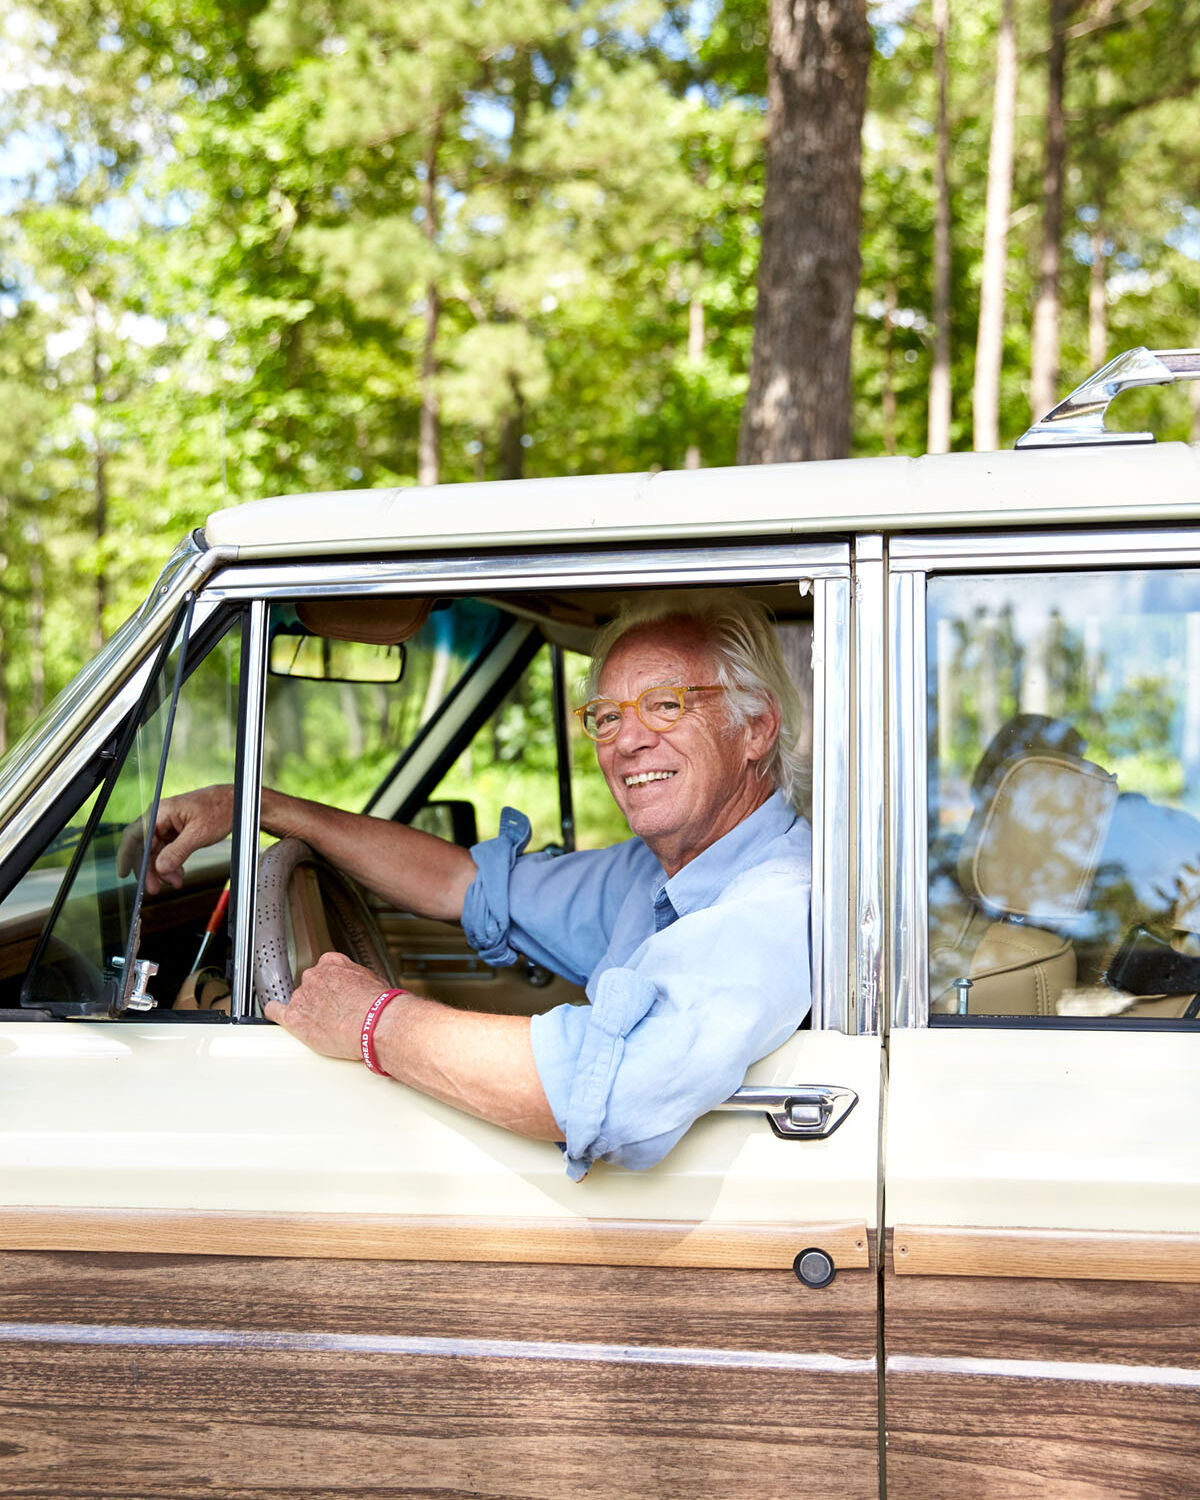 Gates Shaw, wearing a pale blue button up with the sleeves rolled up, smiles from the drivers seat of a vintage wood-panel car